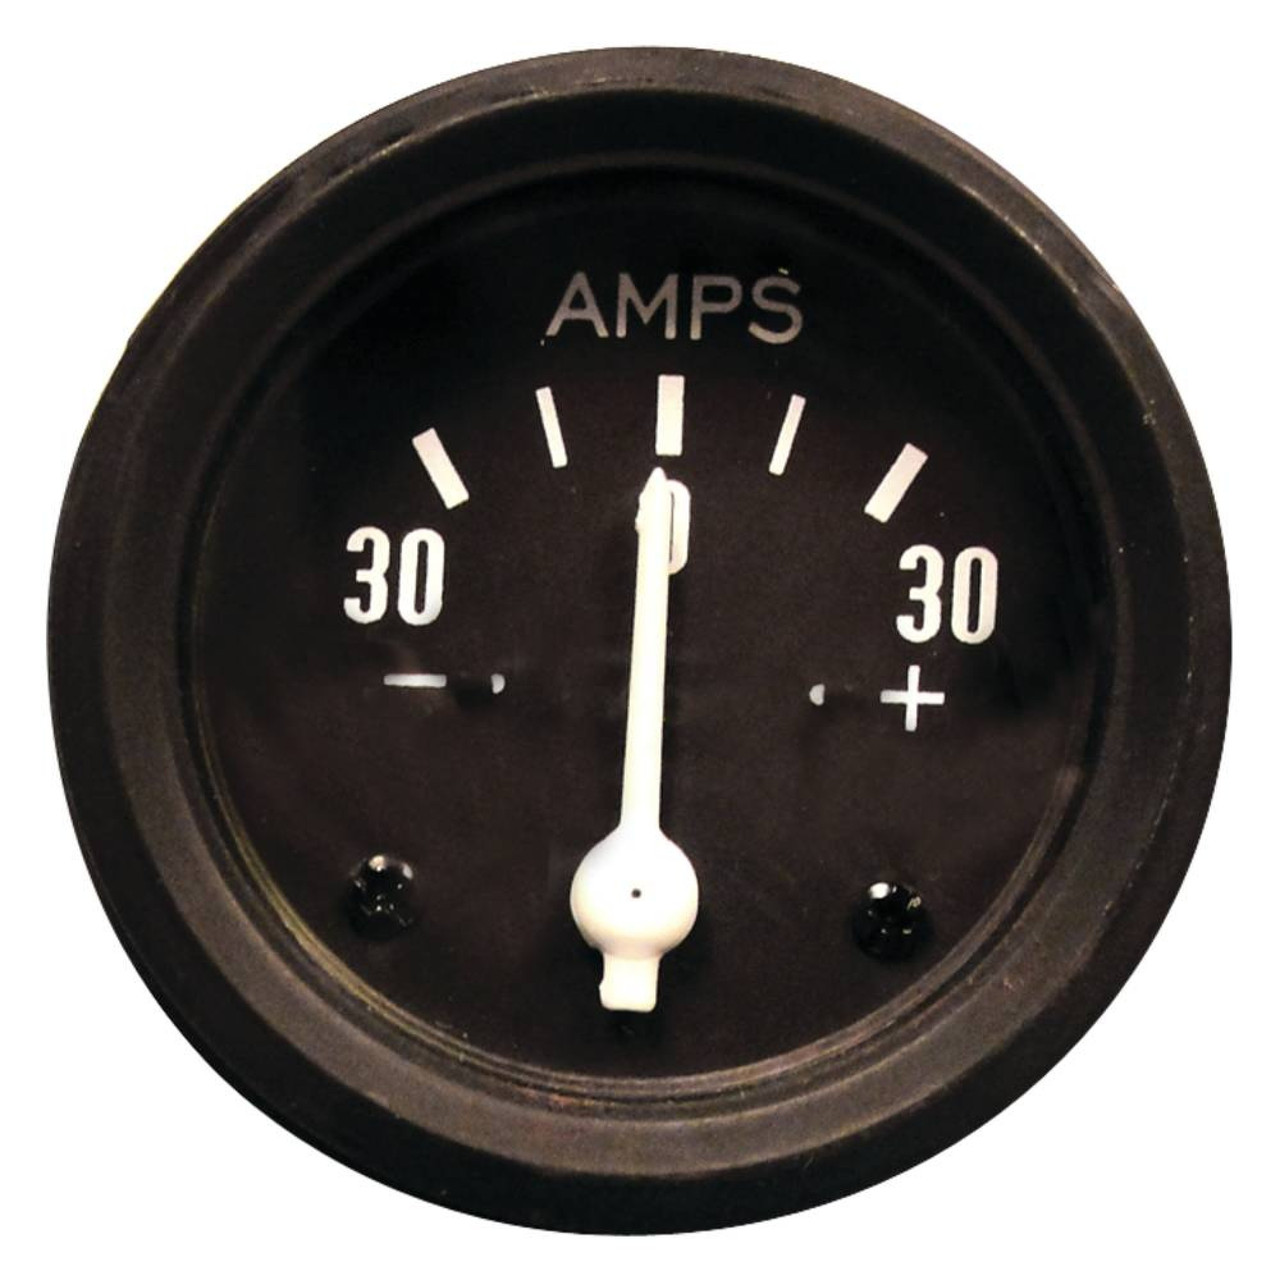 New Amp Meter For Ford Tractor 600 700 800 8n 900 9n